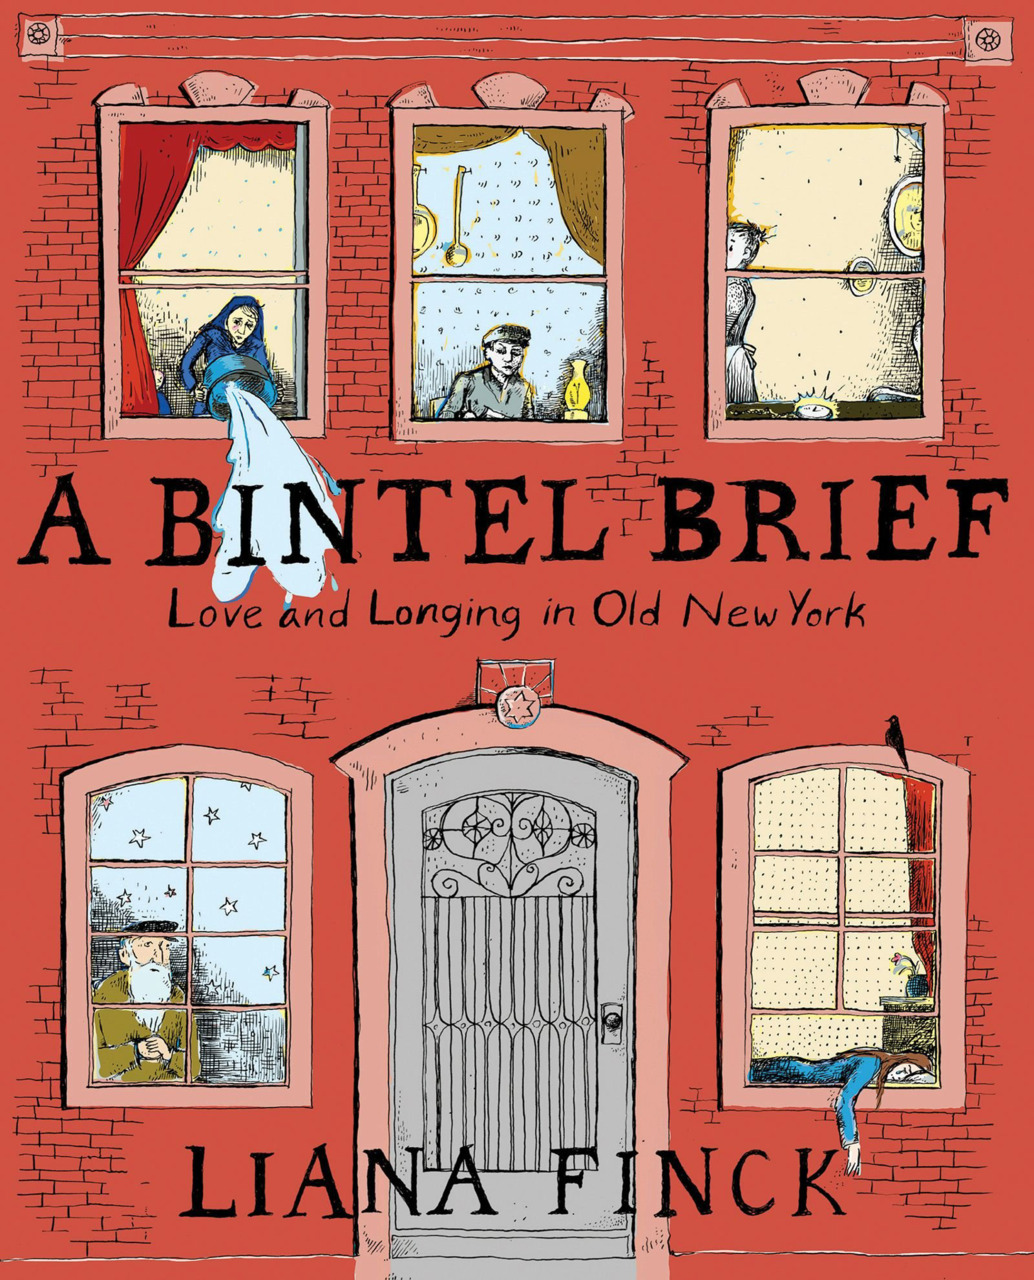 A Bintel Brief by Liana Finick